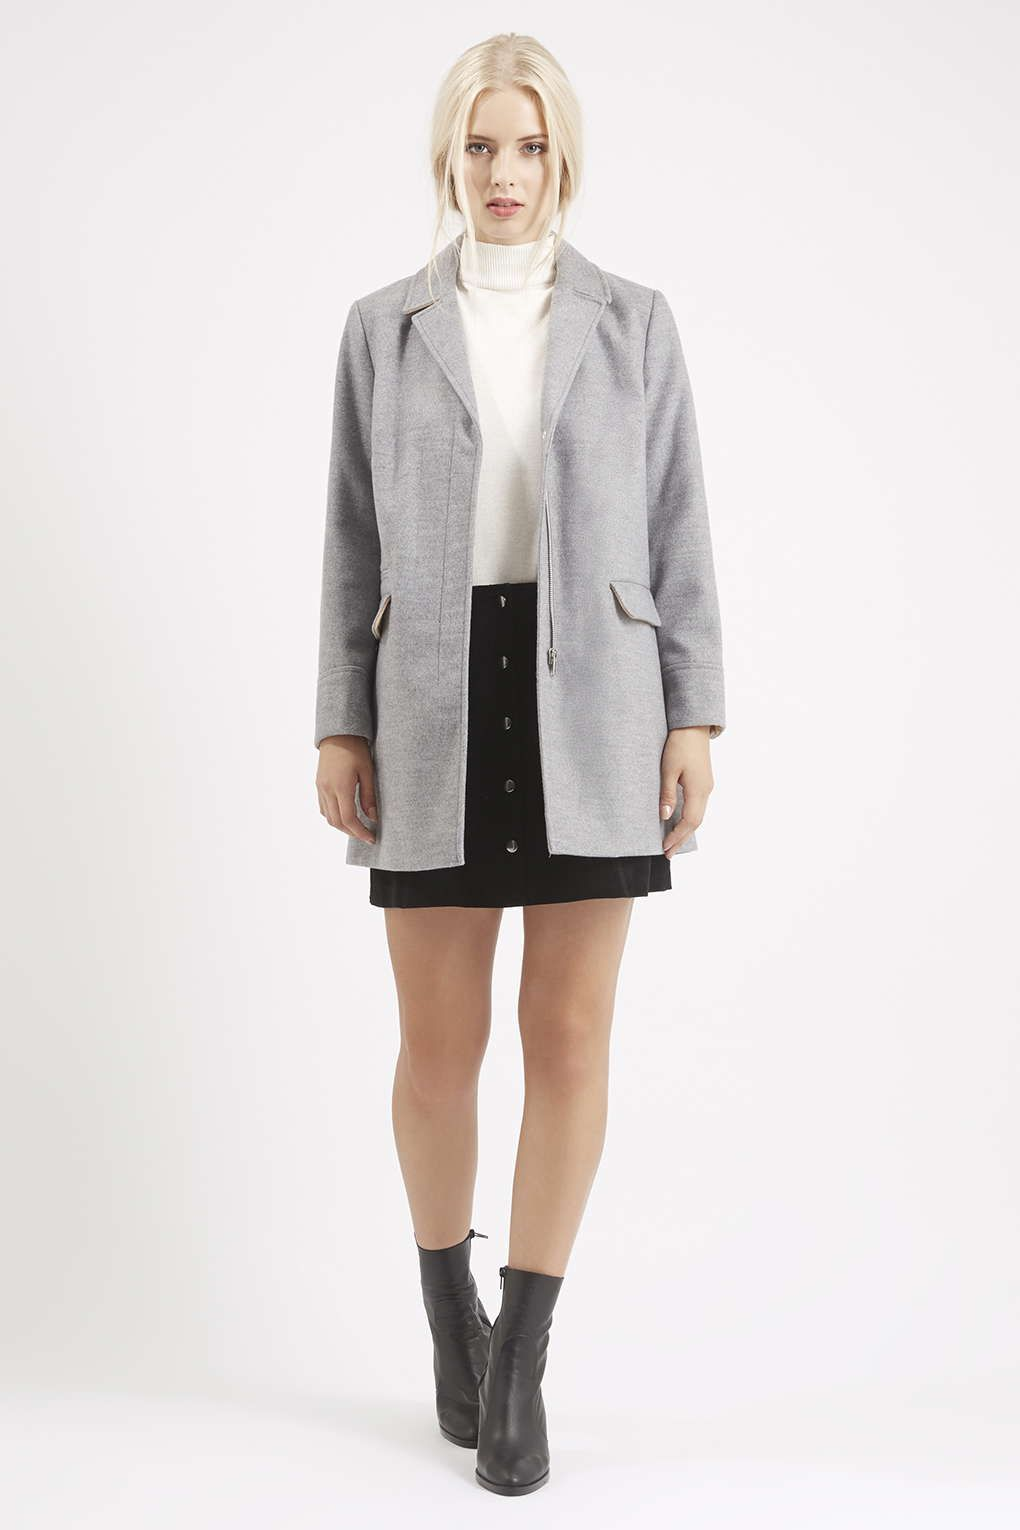 PETITE Slim Pocket Coat - New In Fashion - New In | Topshop ...